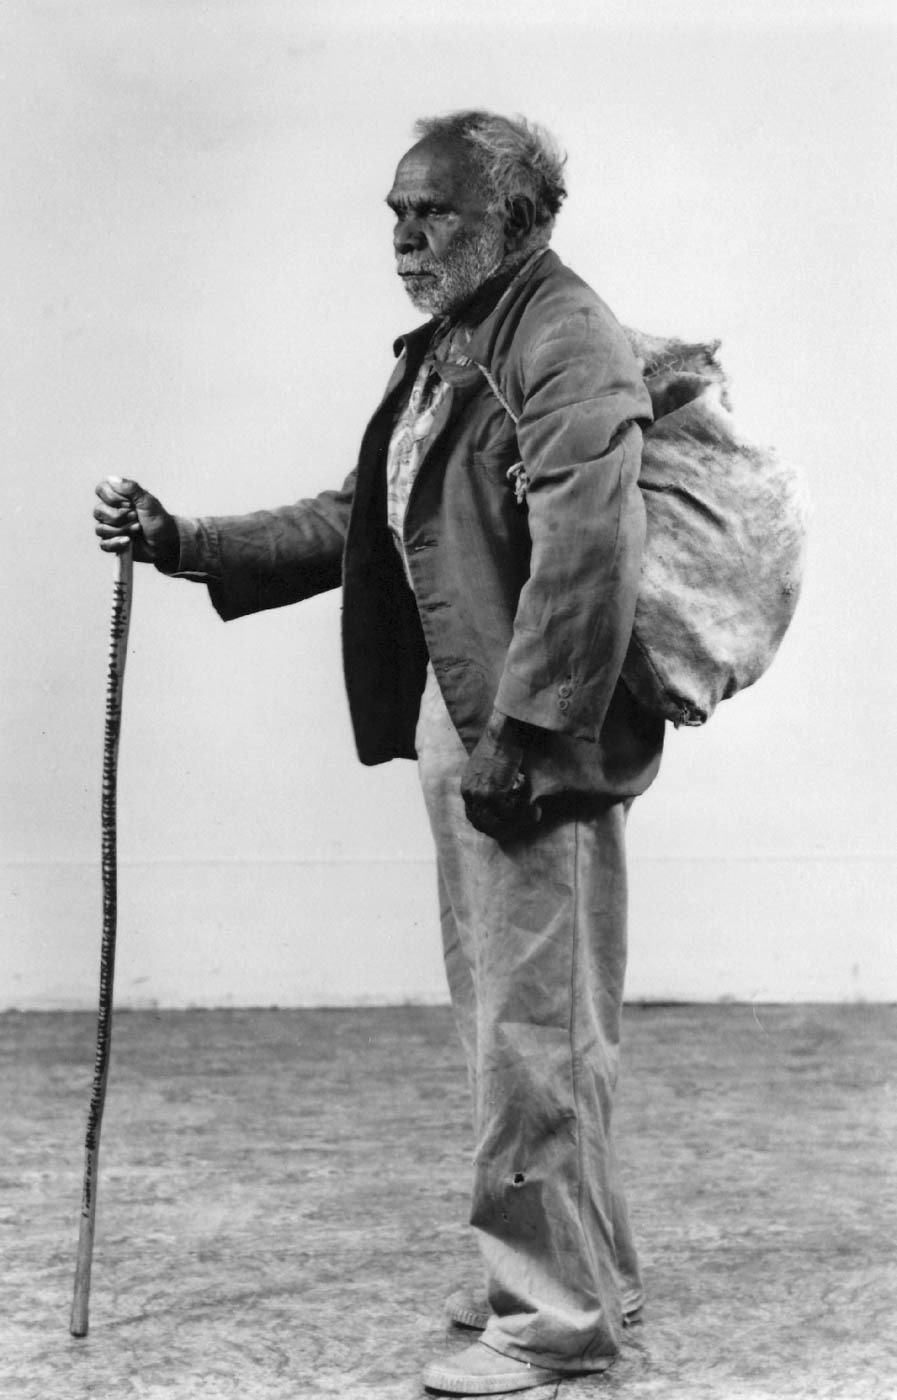 Black and white photo of an elderly man holding a walking stick with markings and carrying a duffel bag. - click to view larger image